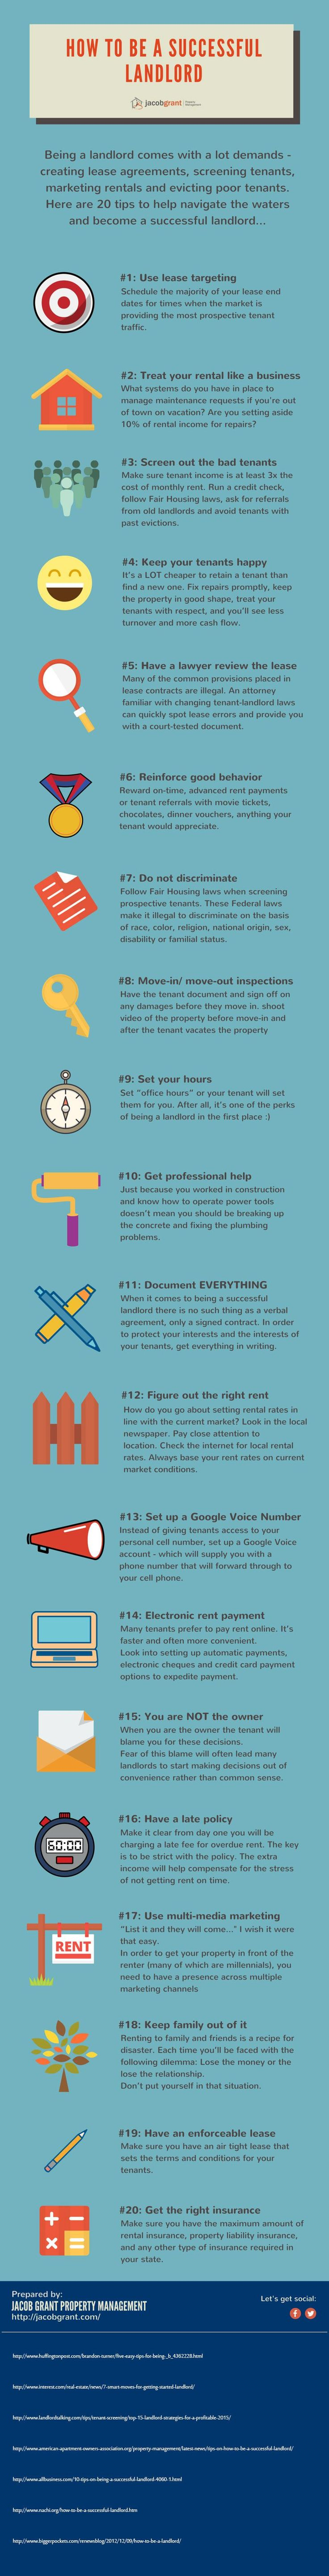 20 tips to be a successful landlord in 2015  | Inman http://www.inman.com/2015/08/12/20-tips-to-be-a-successful-landlord-in-2015/?utm_content=buffer987ed&utm_medium=social&utm_source=pinterest.com&utm_campaign=buffer